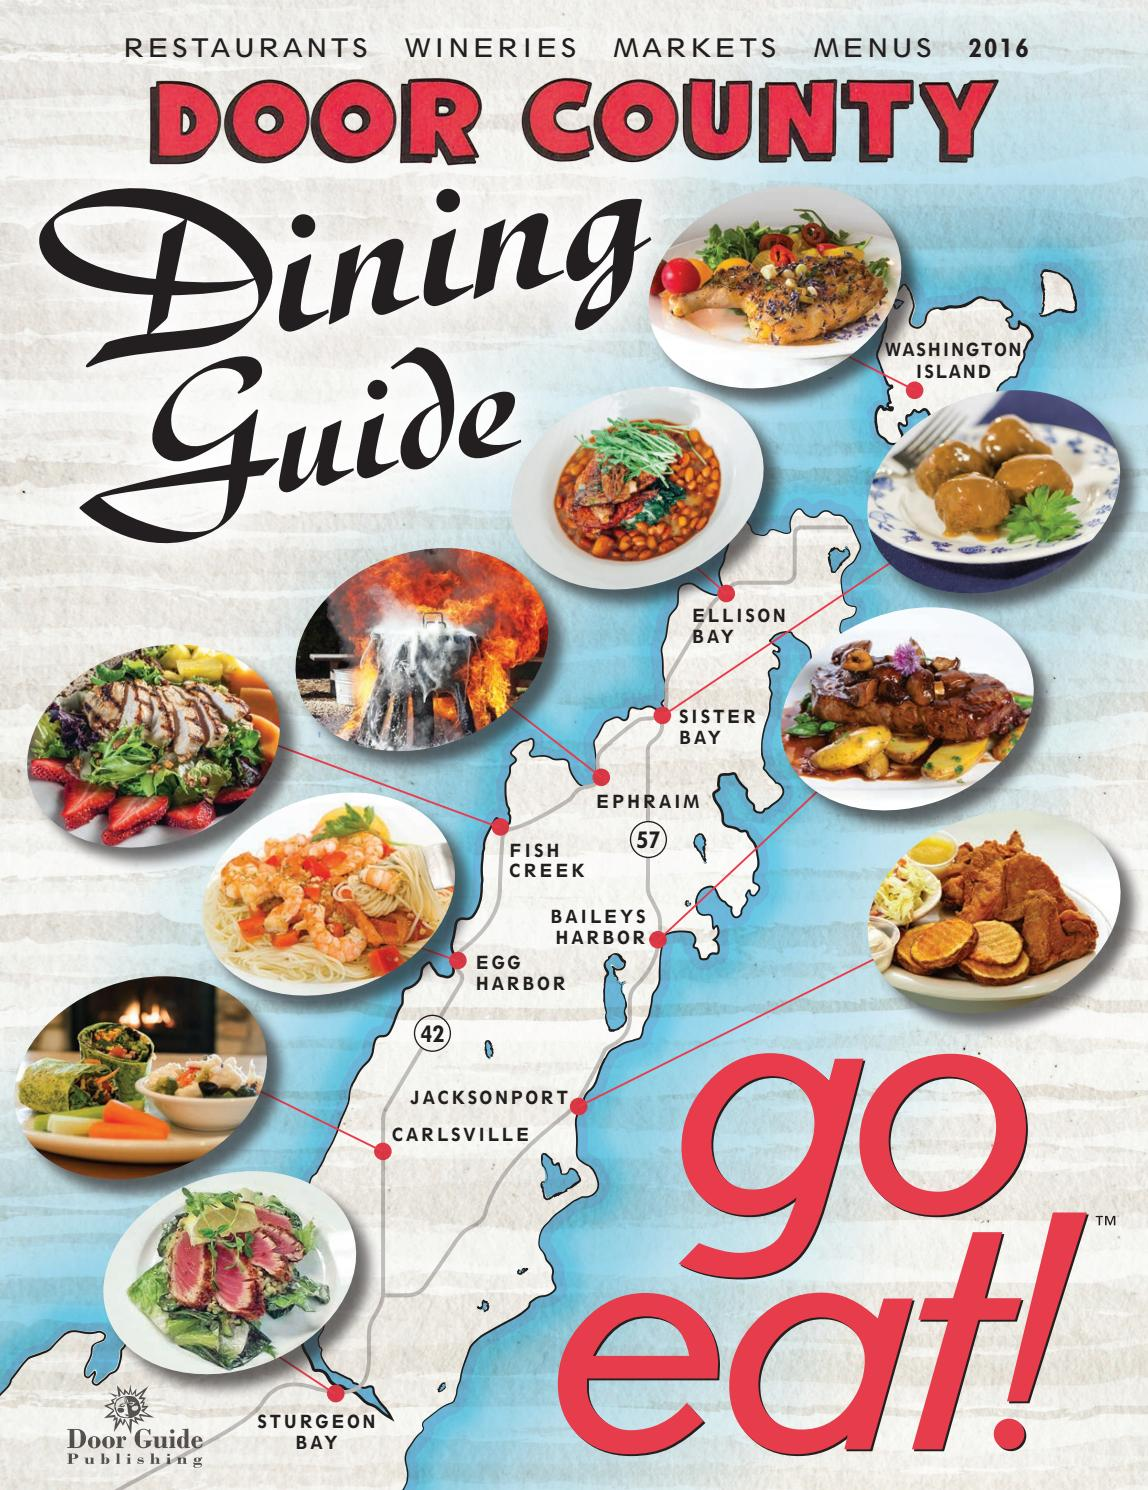 2016 Door County Dining Guide By Door Guide Publishing Issuu